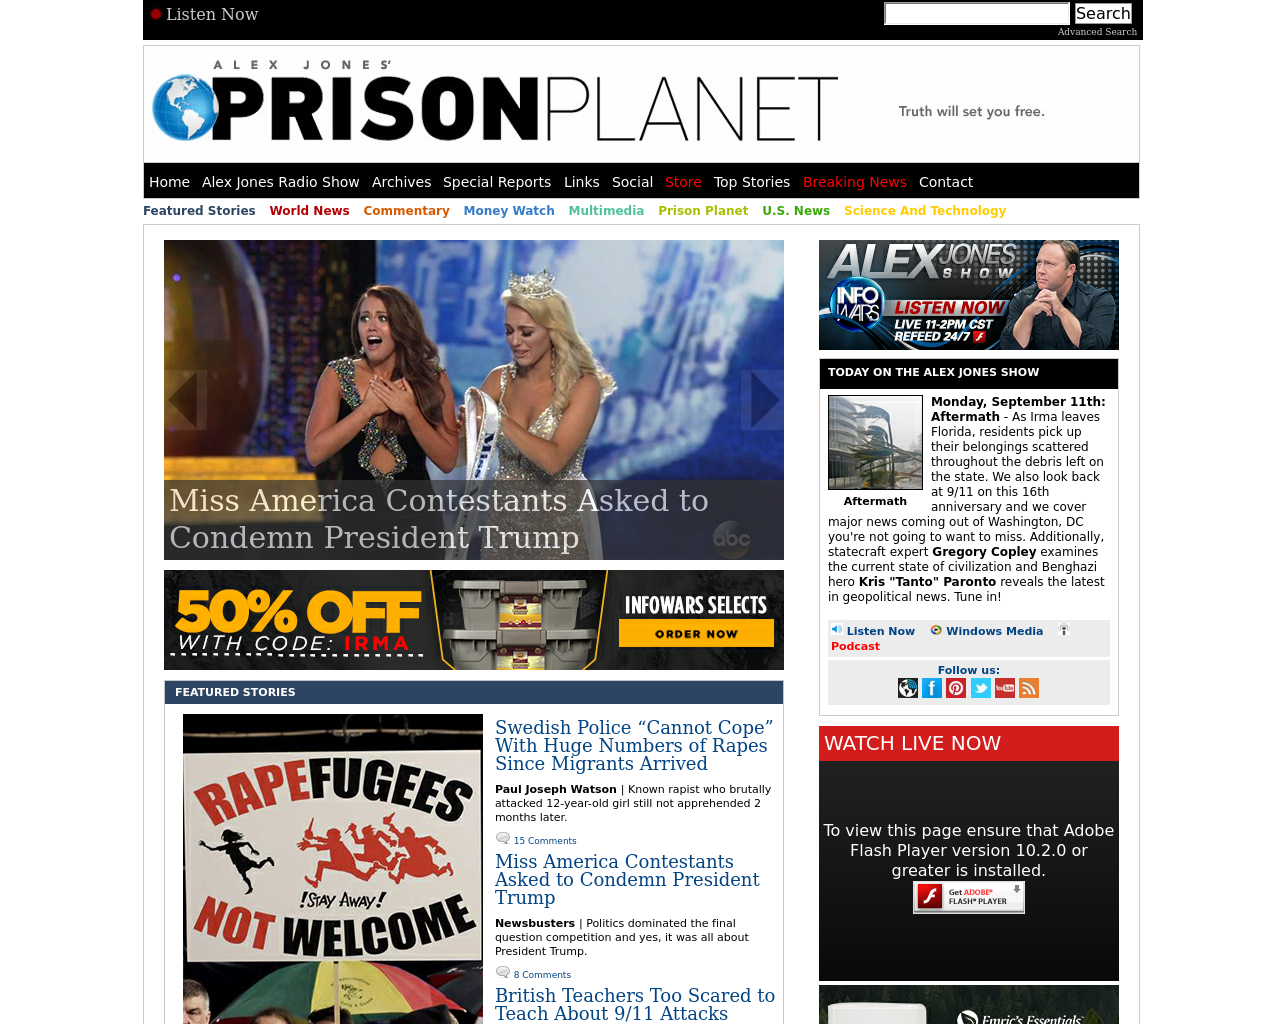 Prison-Planet-Advertising-Reviews-Pricing